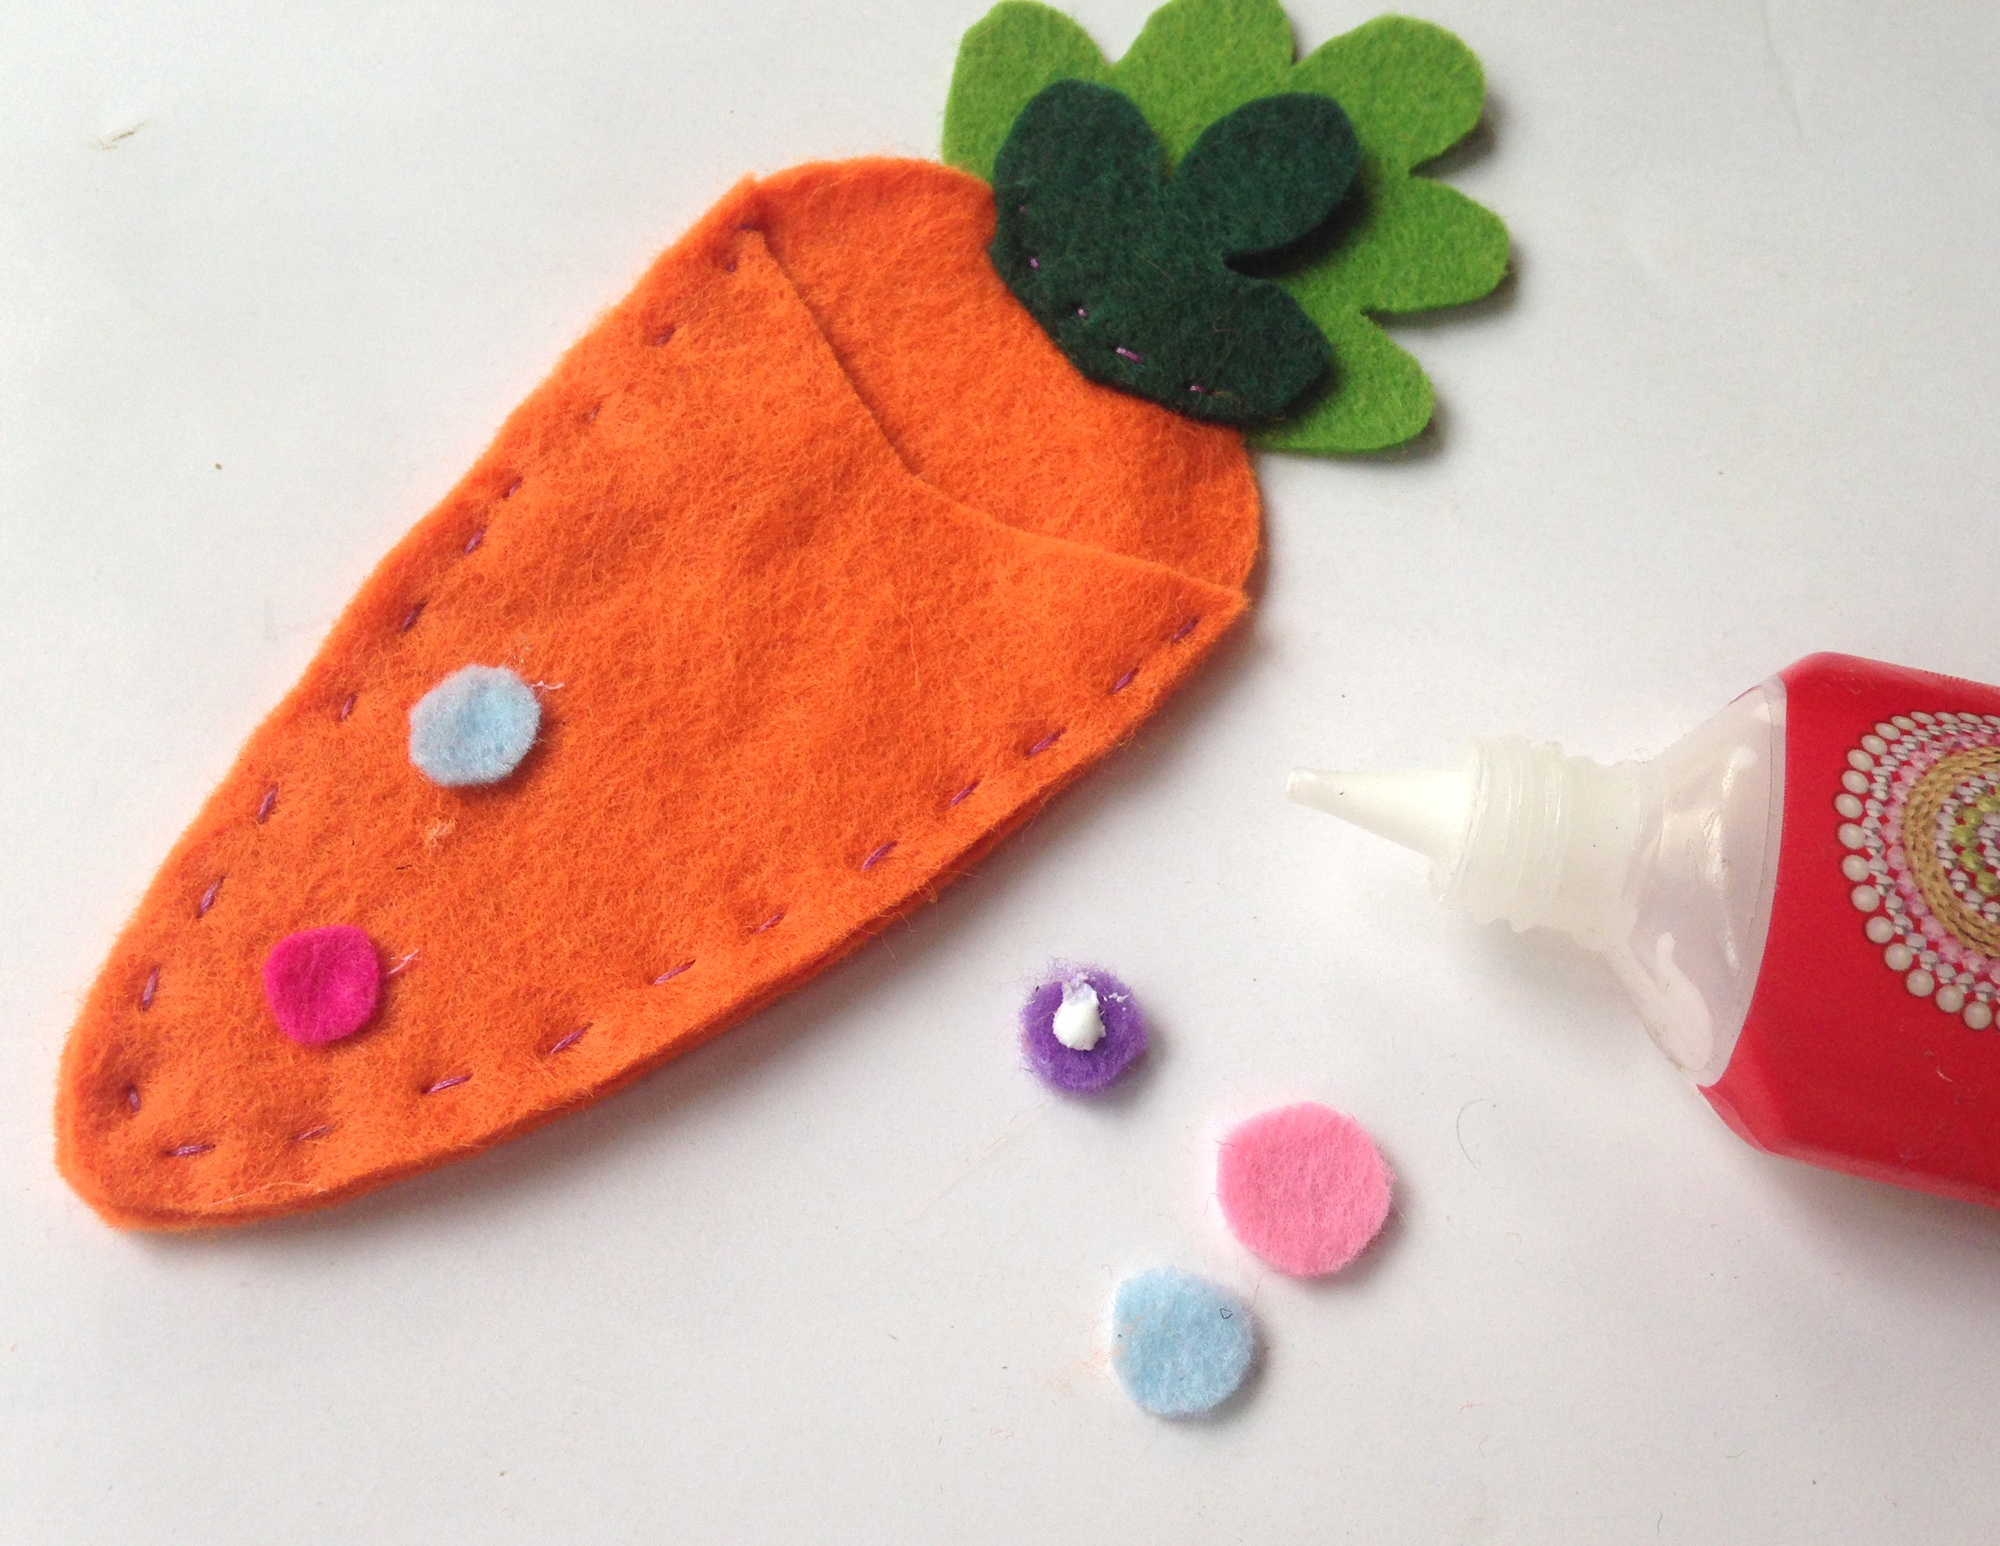 Looking for an Easter craft idea? This Easter felt craft is a fun one. This felt craft for kids and adults doubles as a treat pouch. It makes an easy Easter gift.